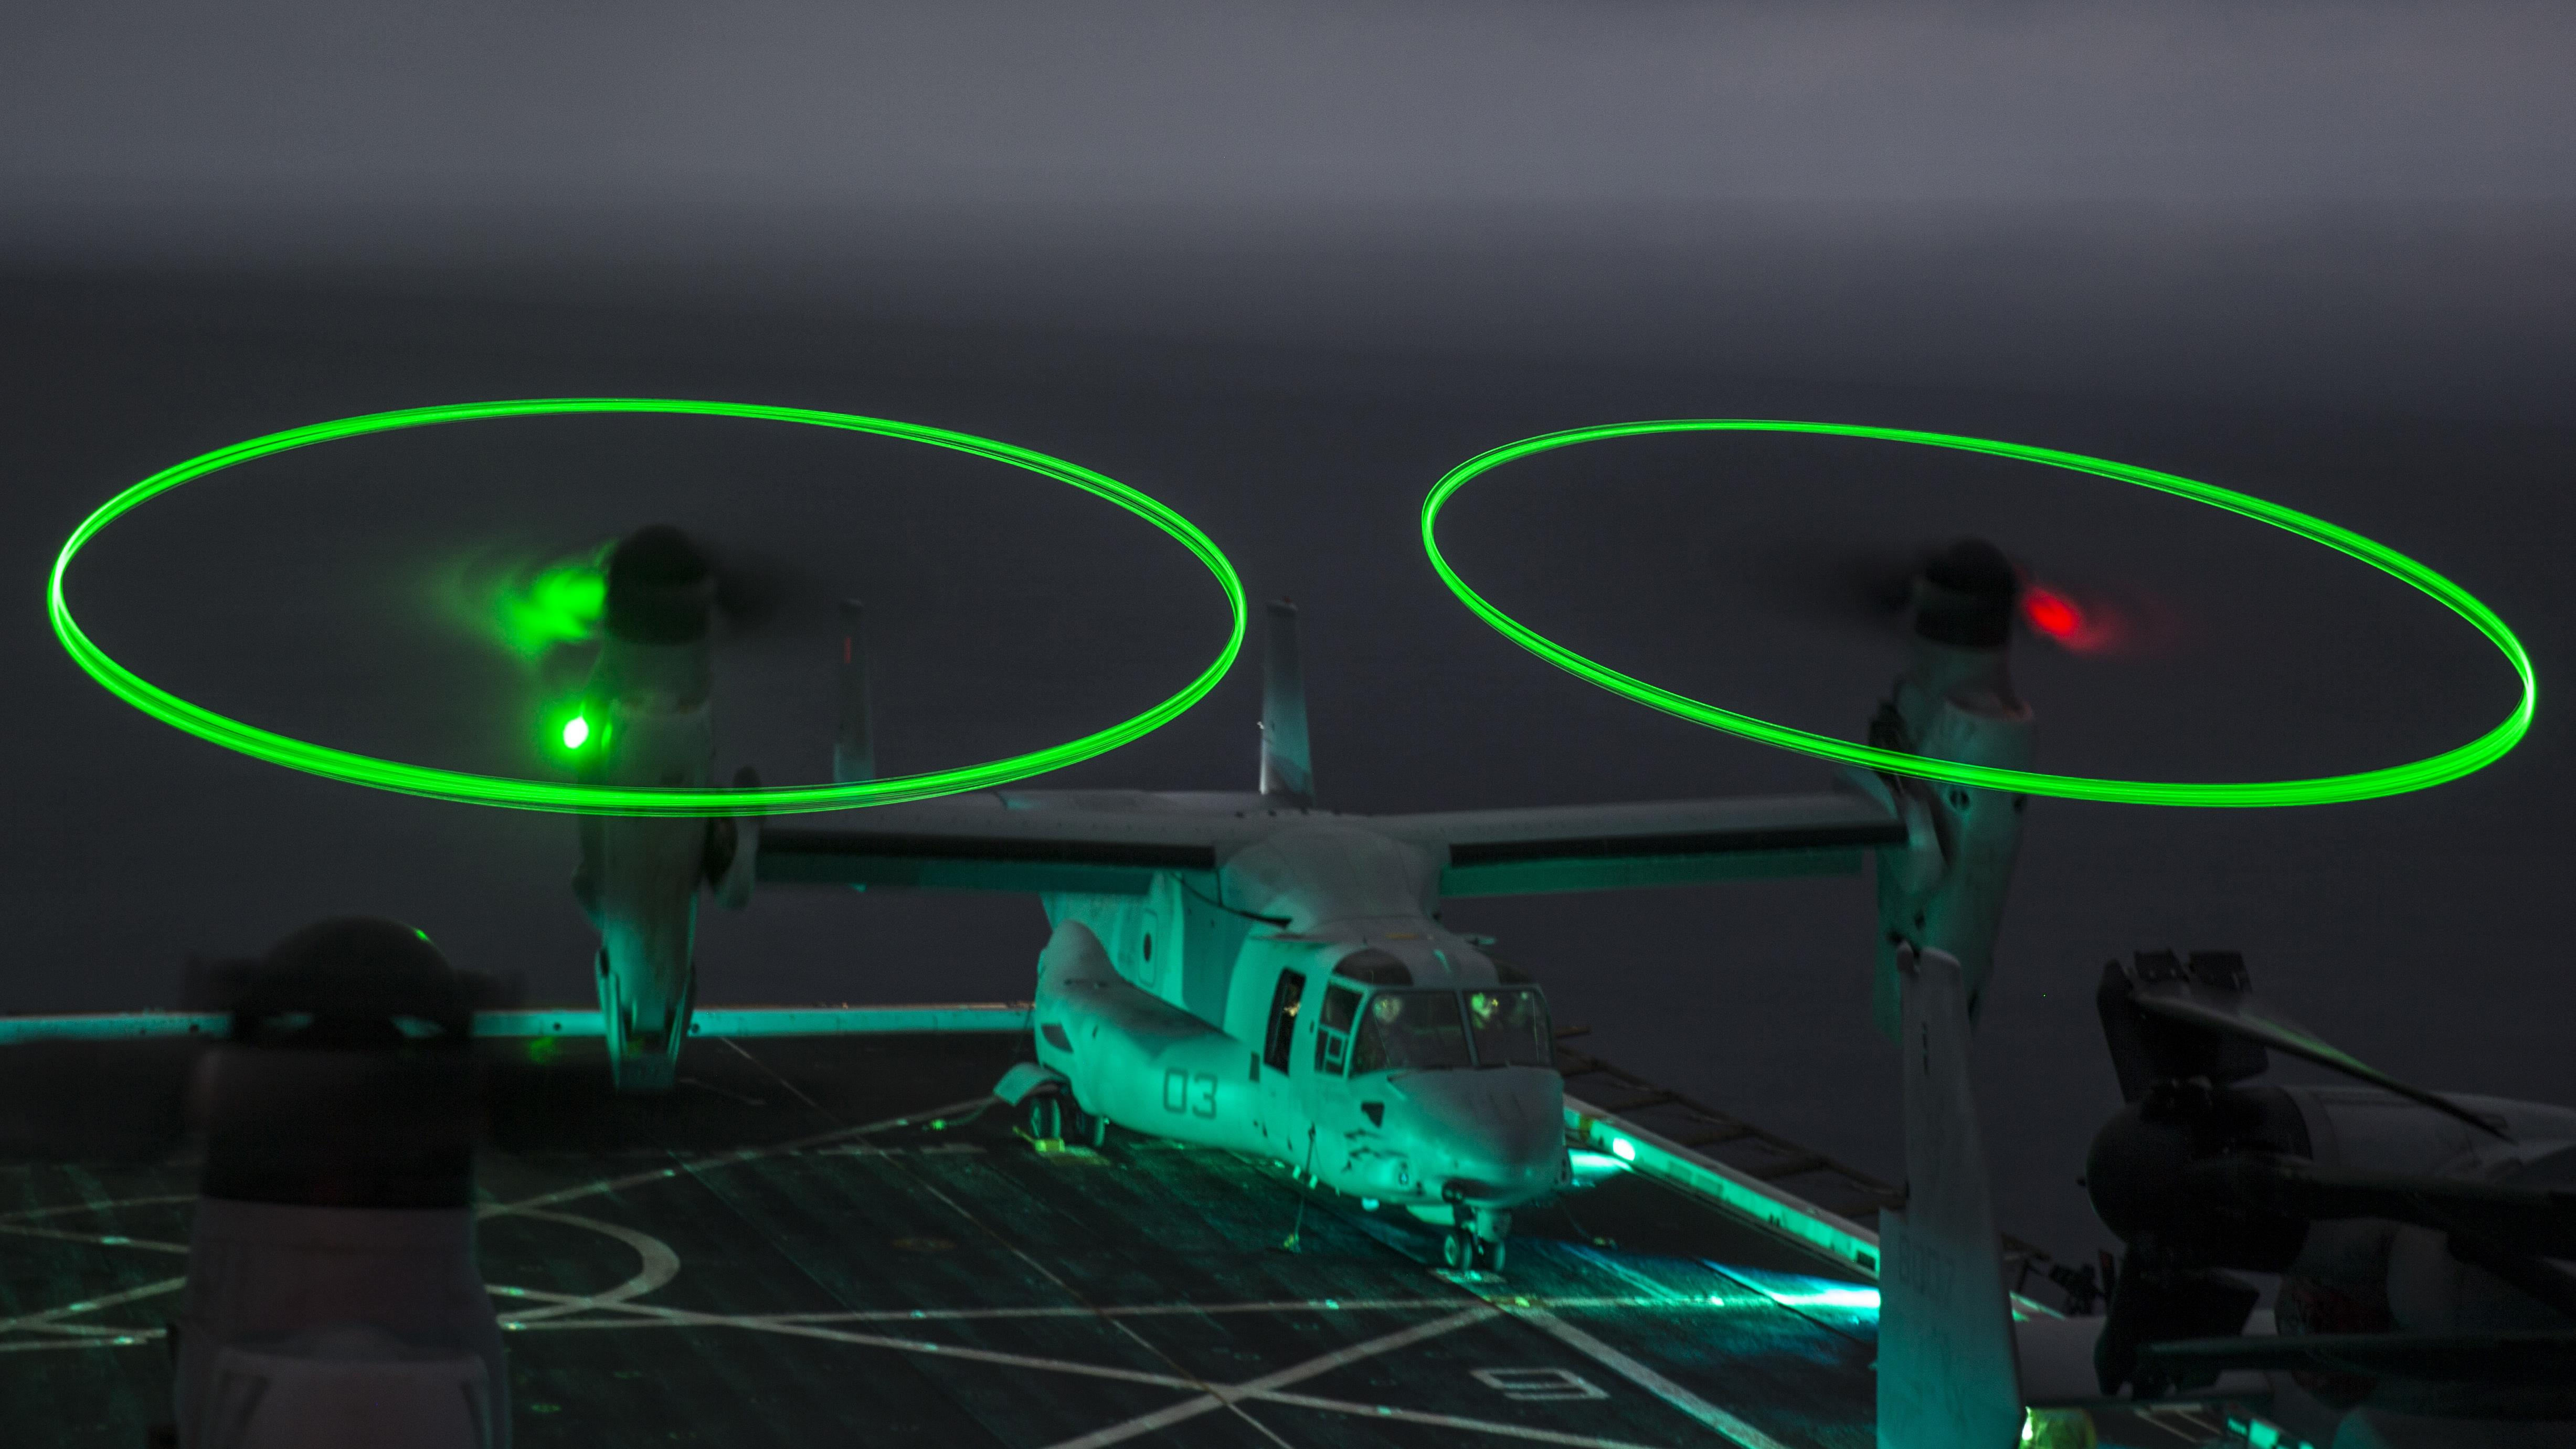 A Marine Corps MV-22B Osprey assigned to the 13th MEU operating from USS Boxer (LHD-4). US Marine Corps Photo